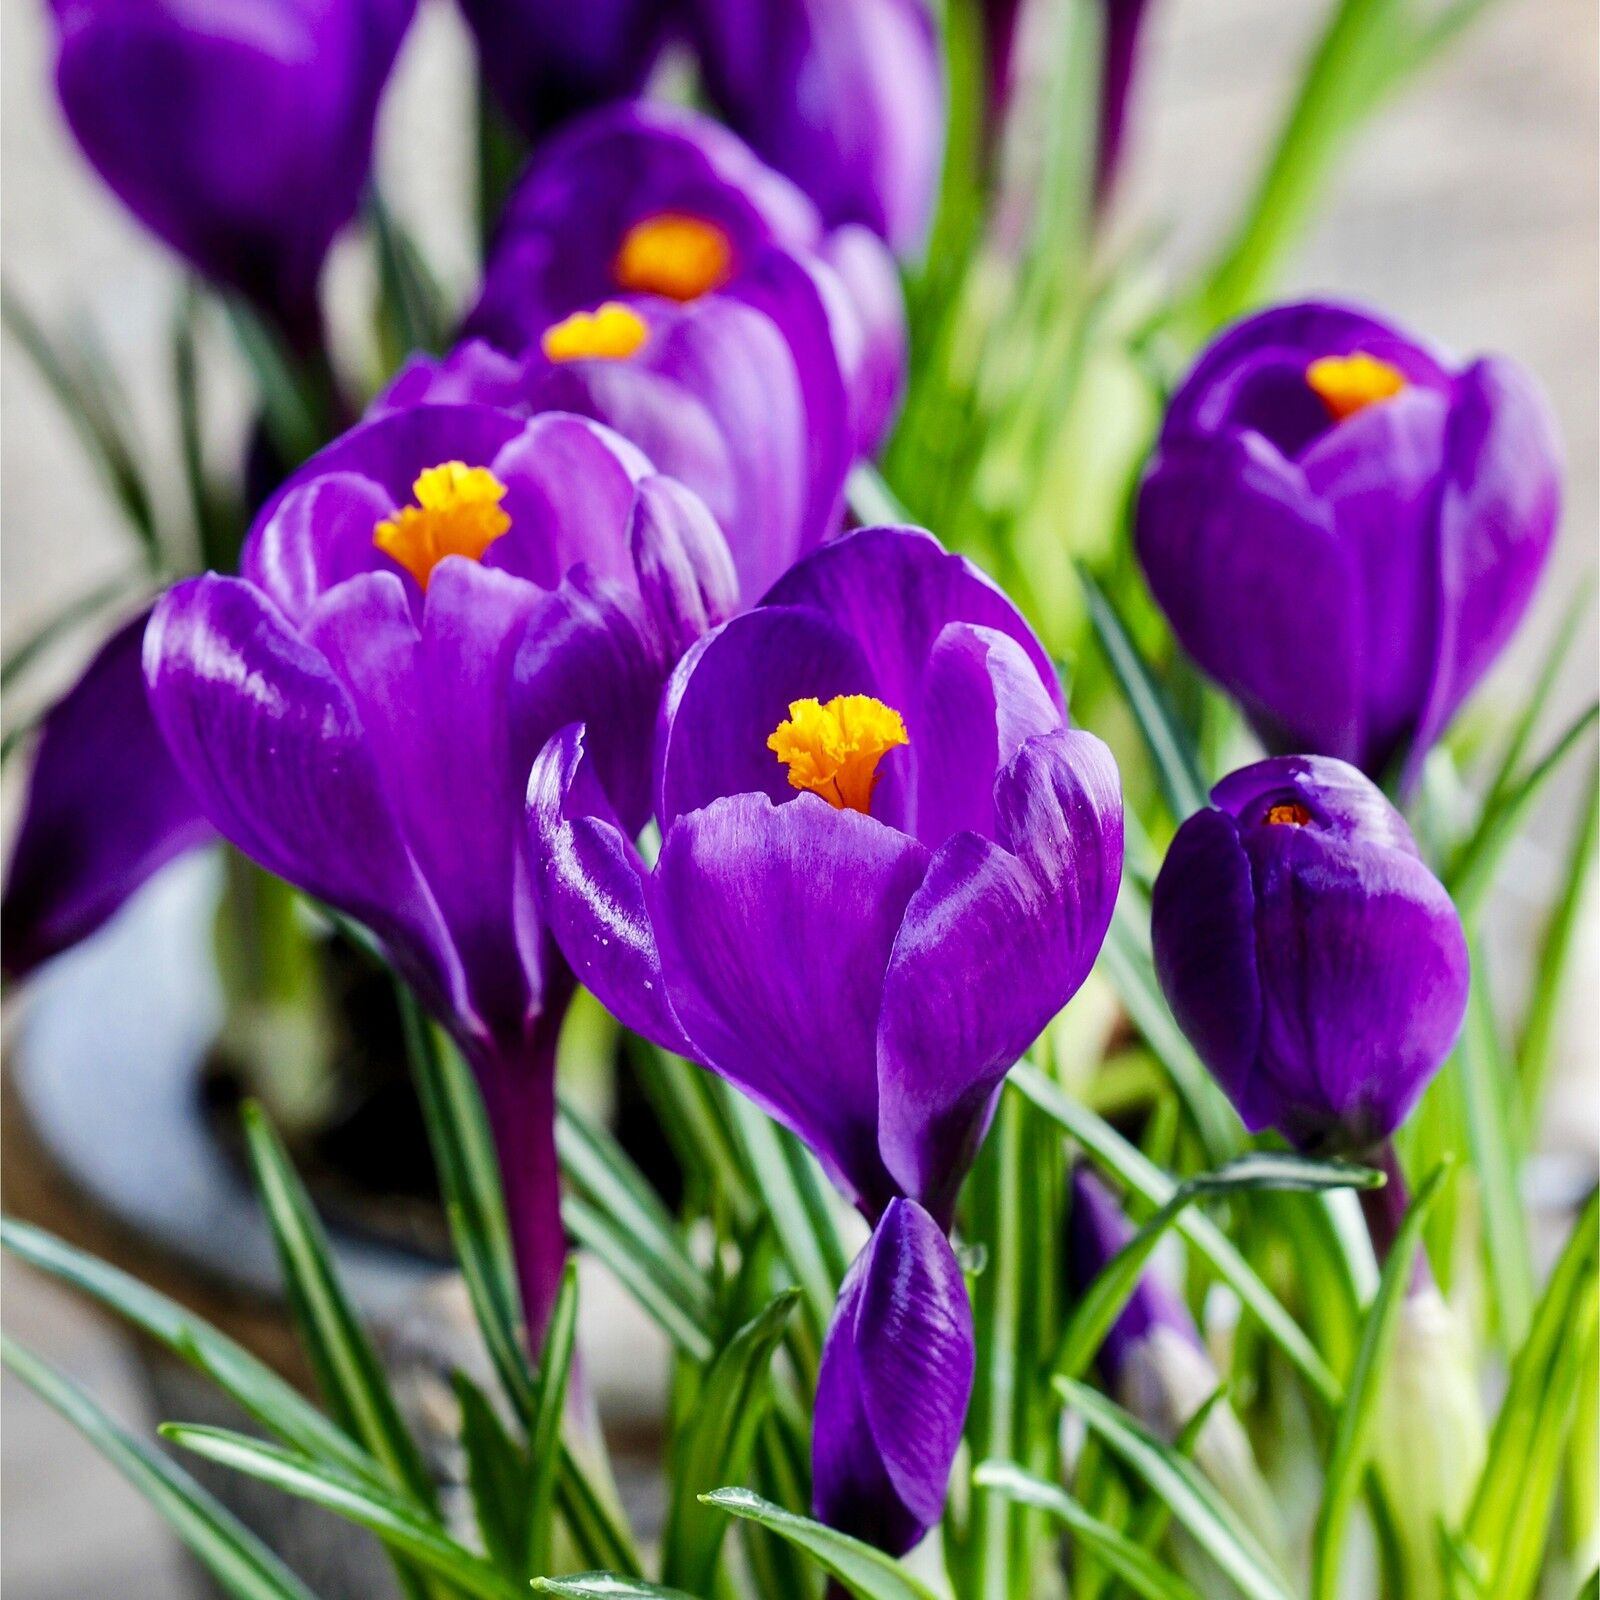 100 crocus bulbs purple flower record spring large flowering crocus 100 crocus bulbs purple flower record spring large flowering crocus bulbs corms mightylinksfo